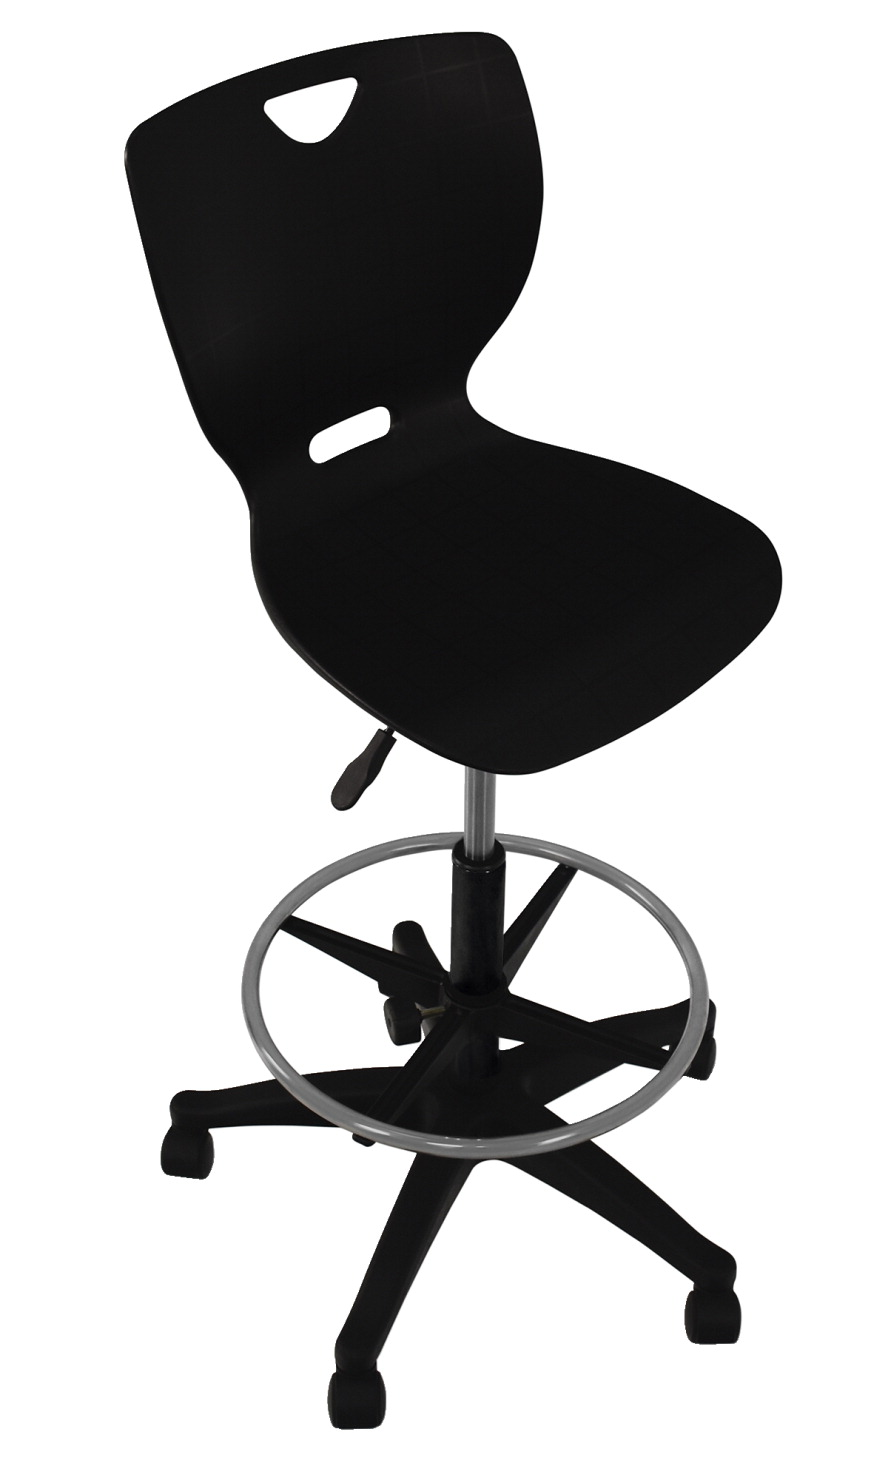 Classroom Select NeoClass Pneumatic Lift Chair with Adjustable Foot Ring, A Shell, Various Options